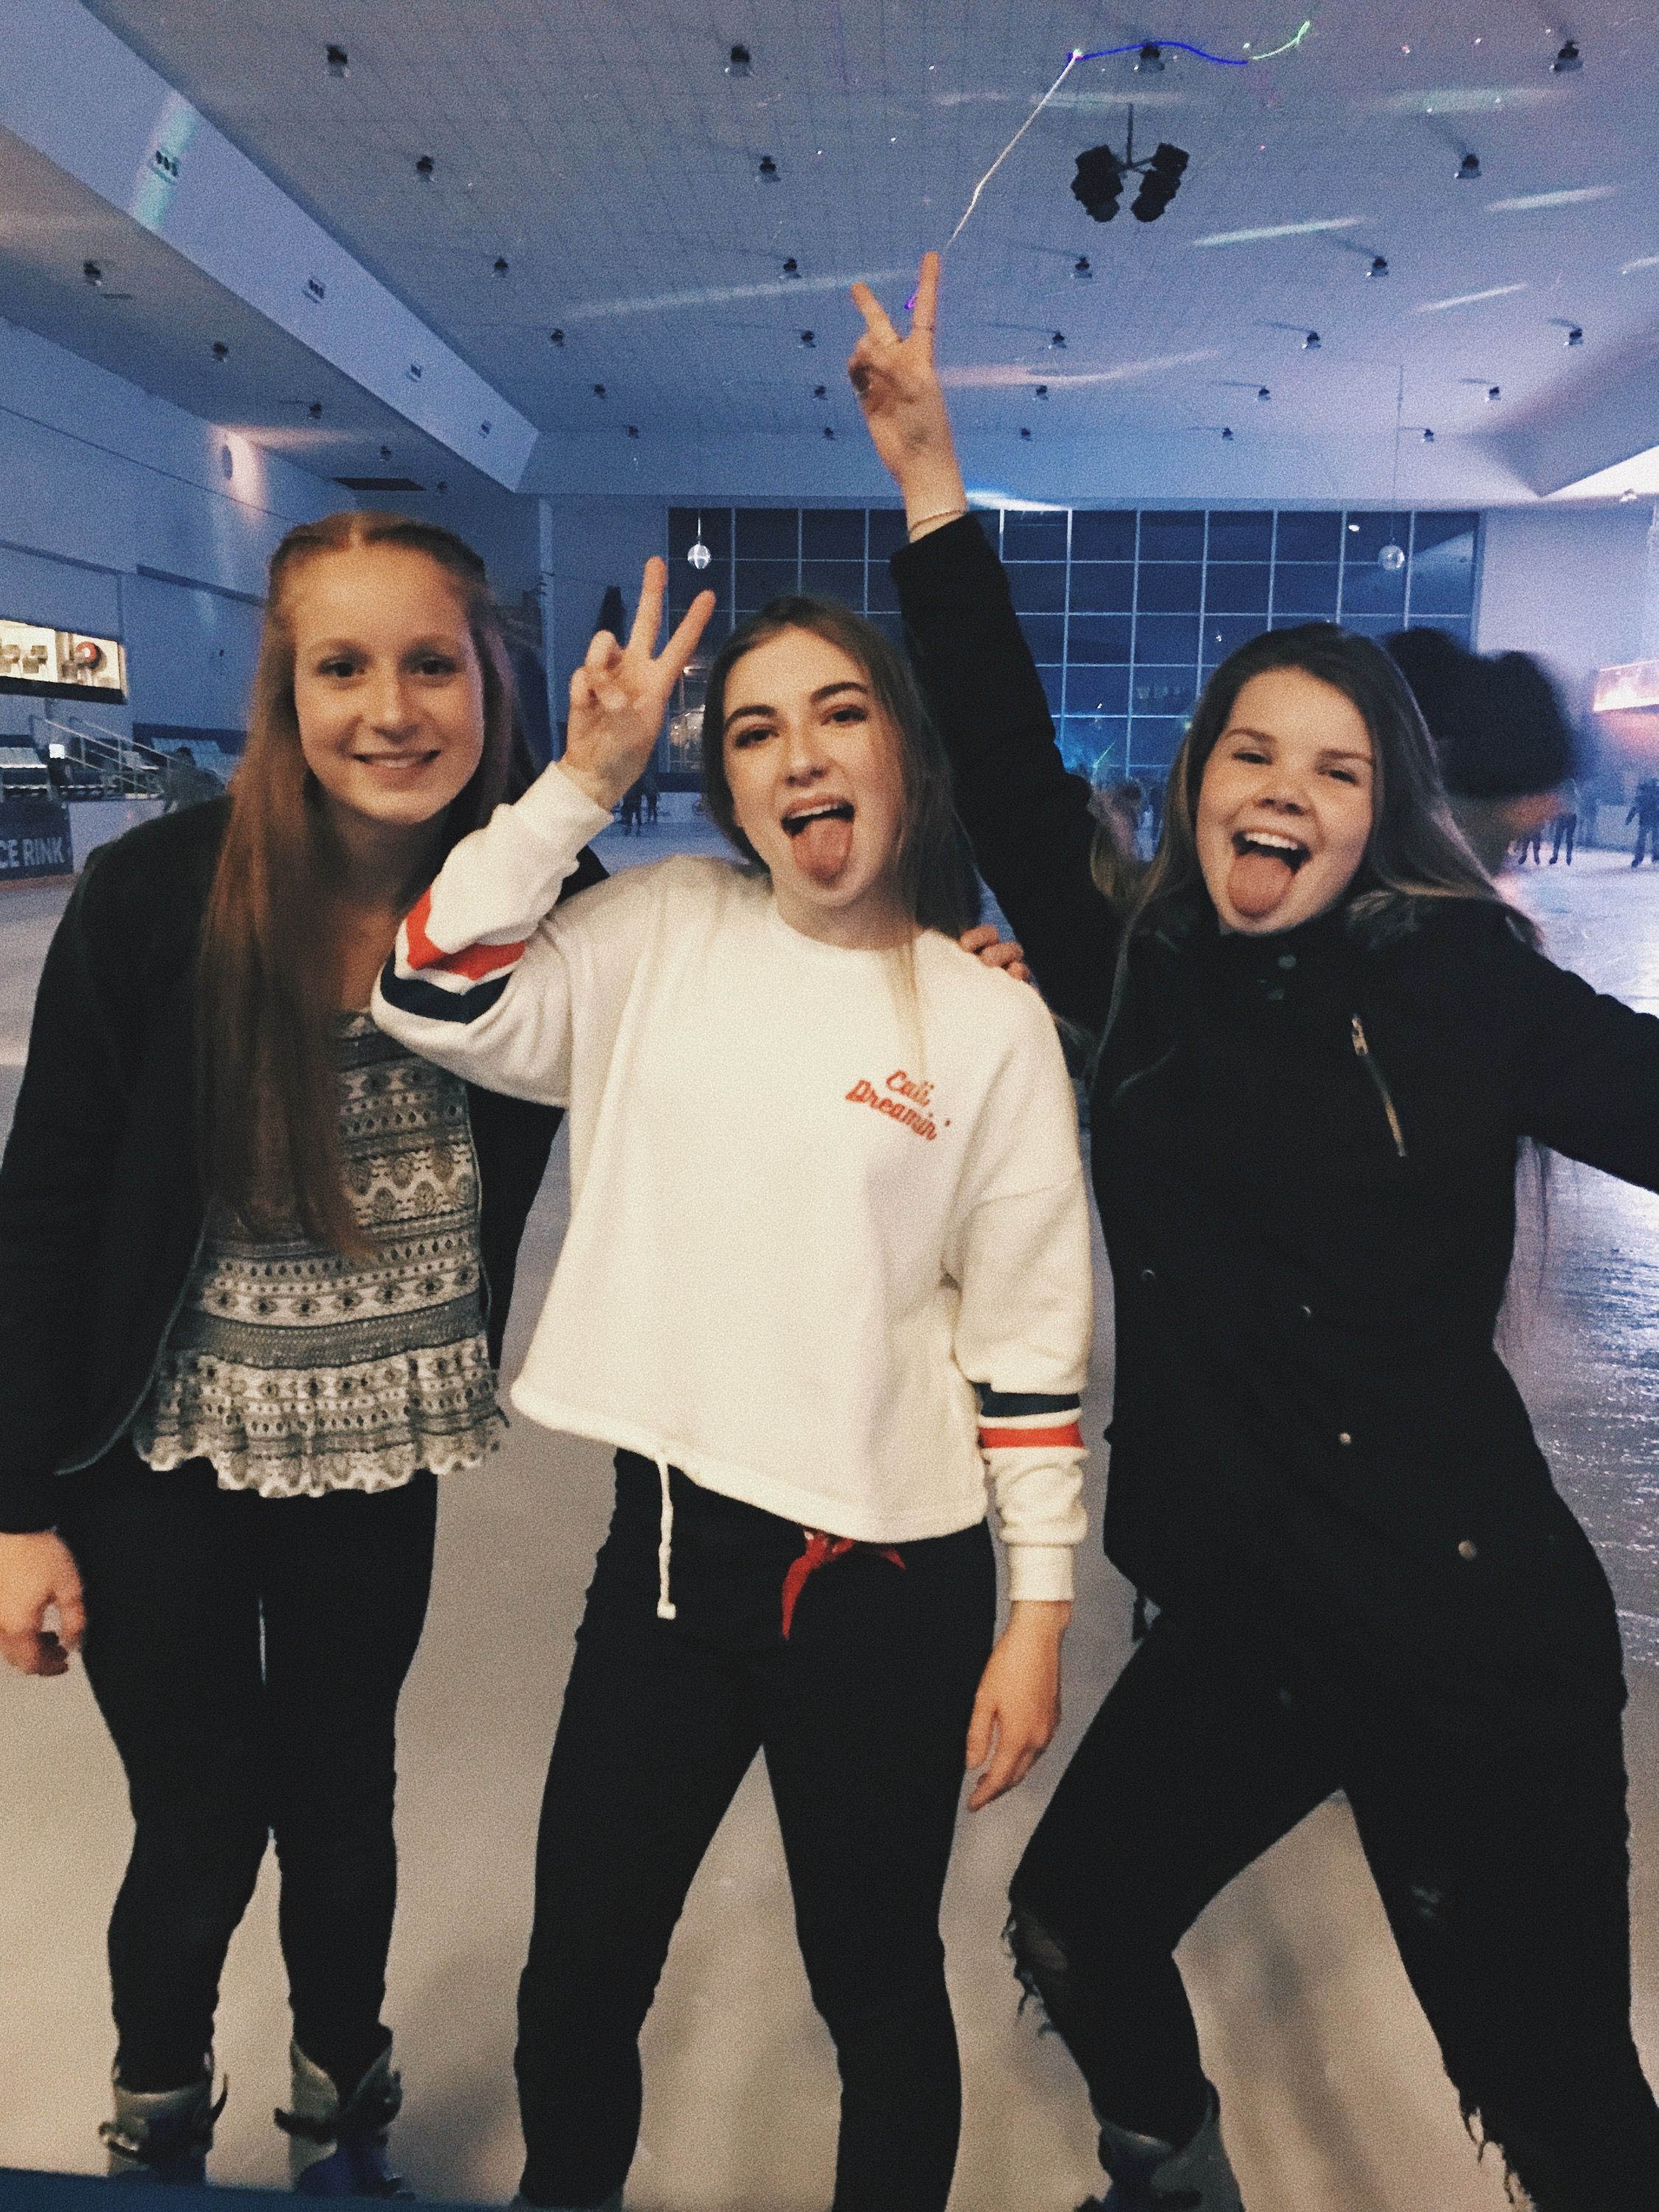 Cute Pictures To Take With Friends Picture Inspiratio Ice Skating Roller Skating Instagram Keiraa Skating Pictures Friends Instagram Best Friend Pictures